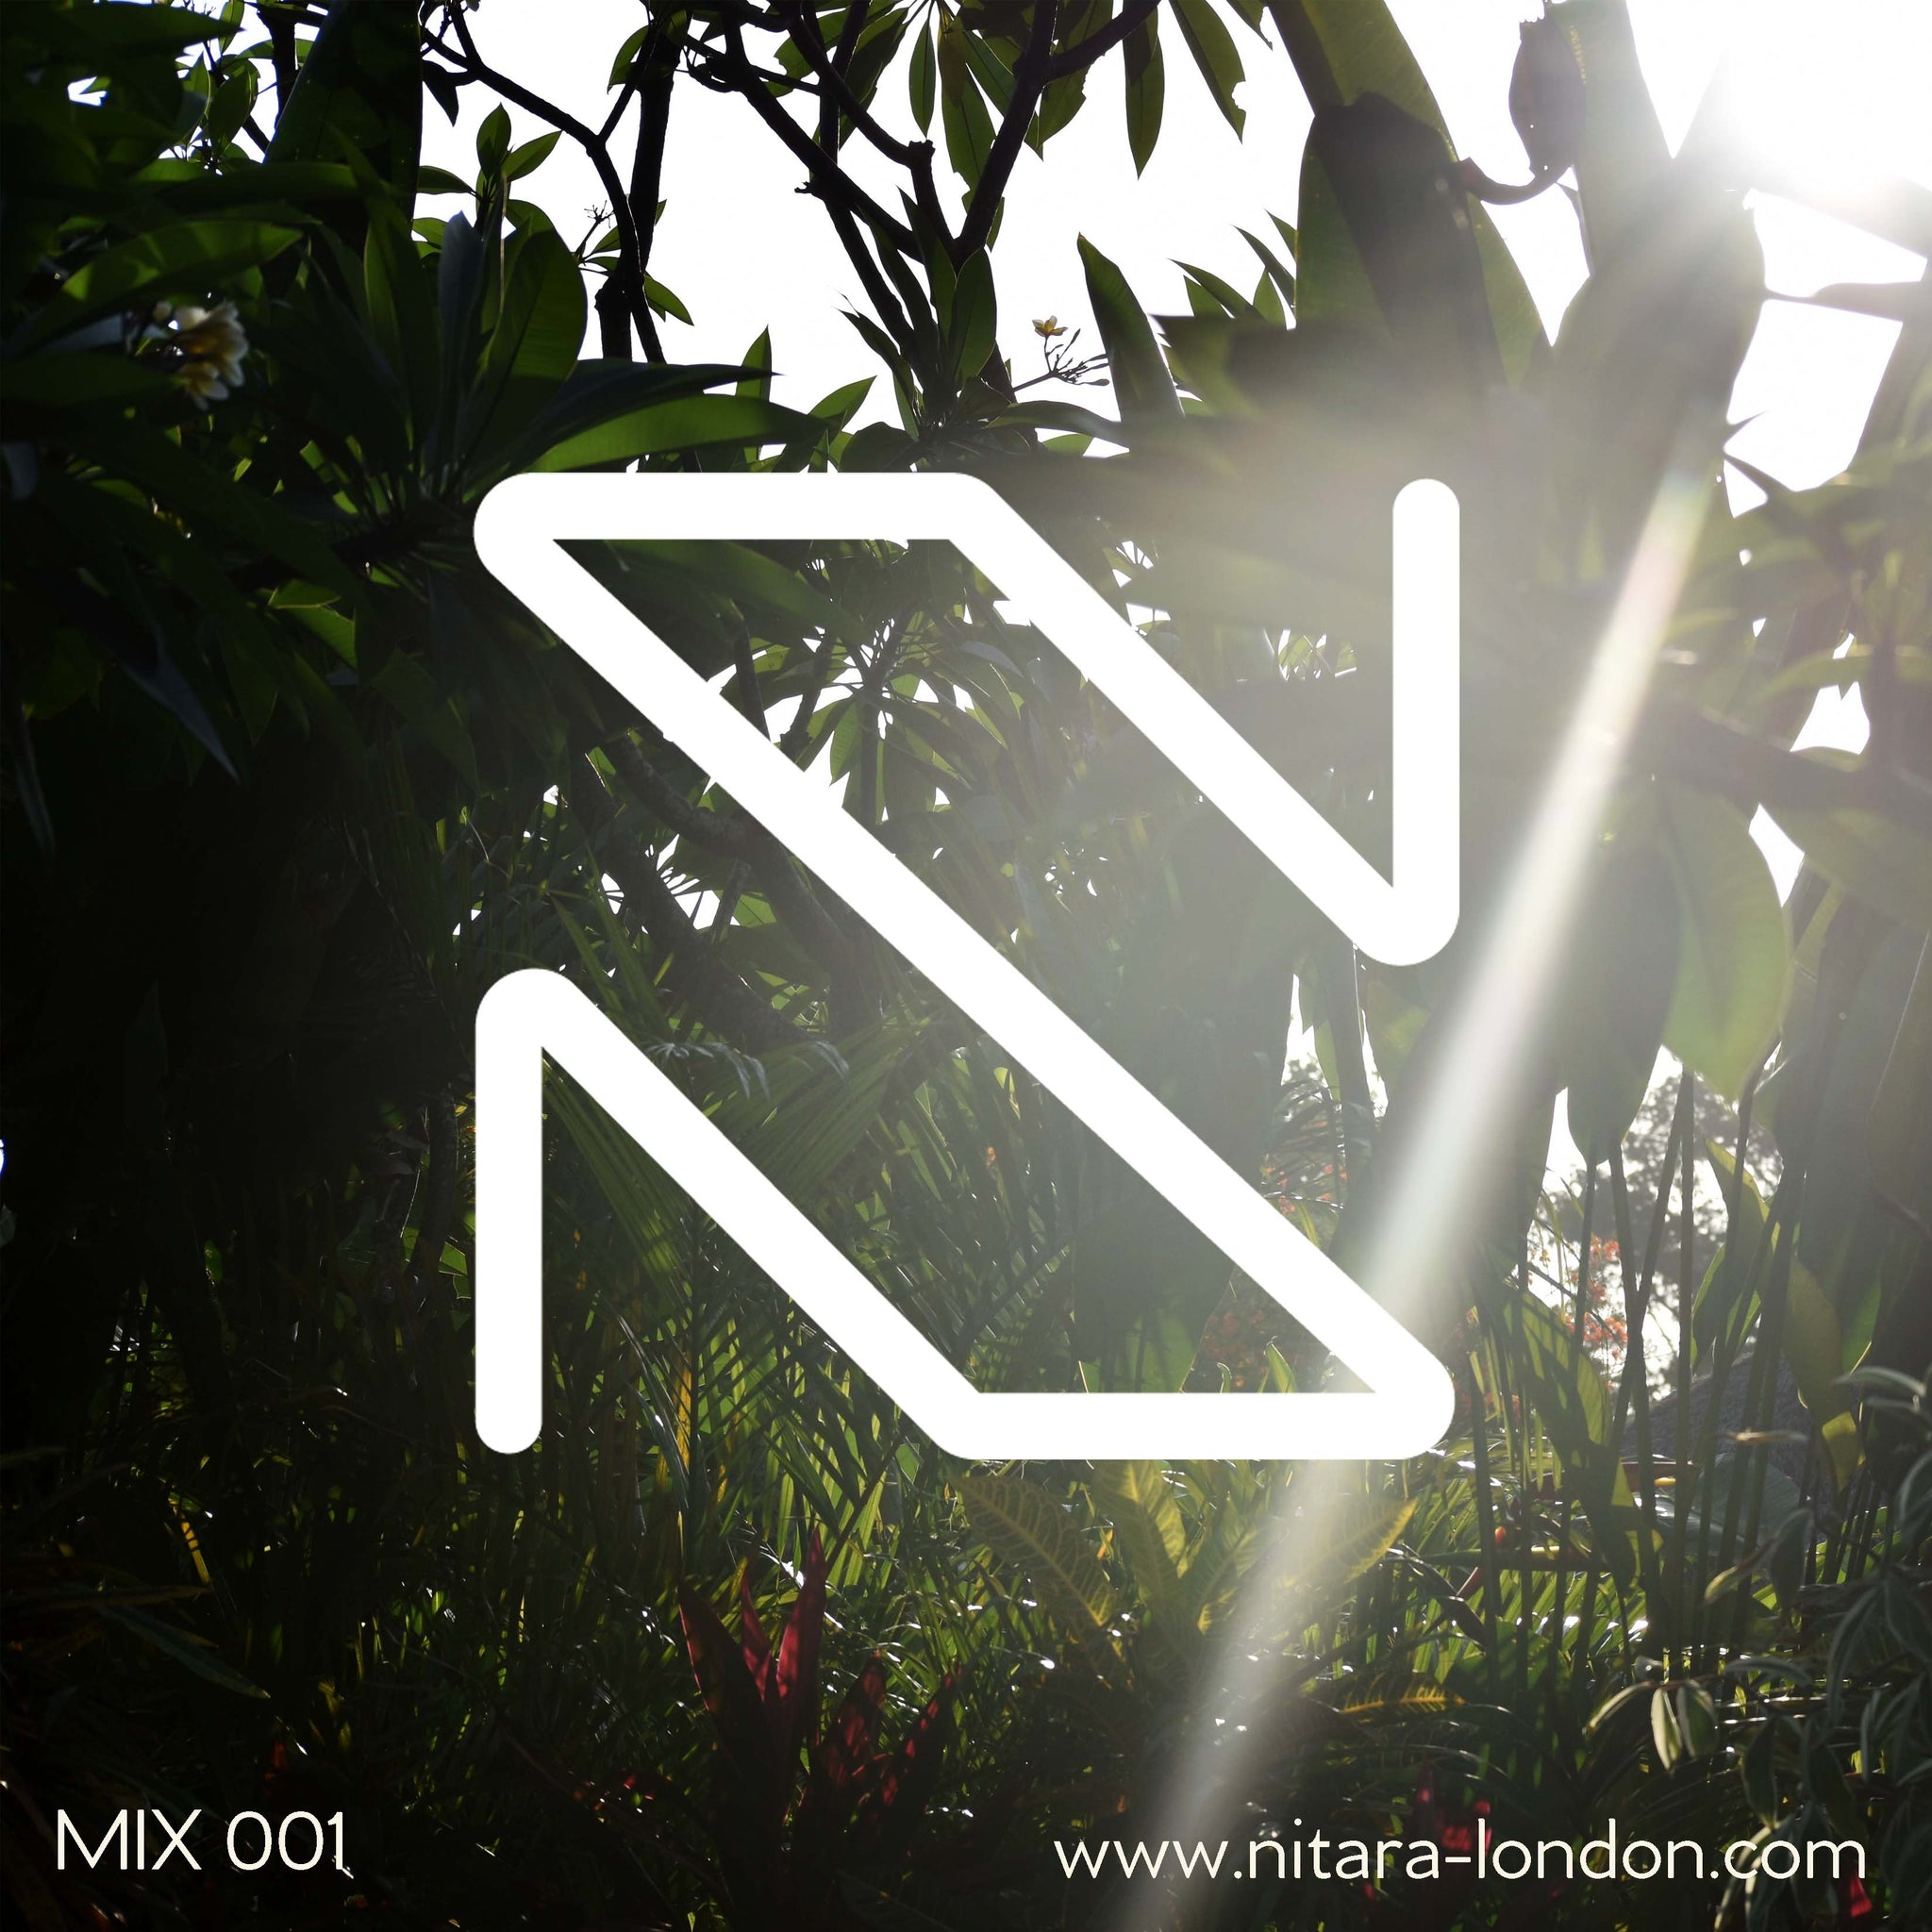 MIX 001 - Melodic chill beats to move to